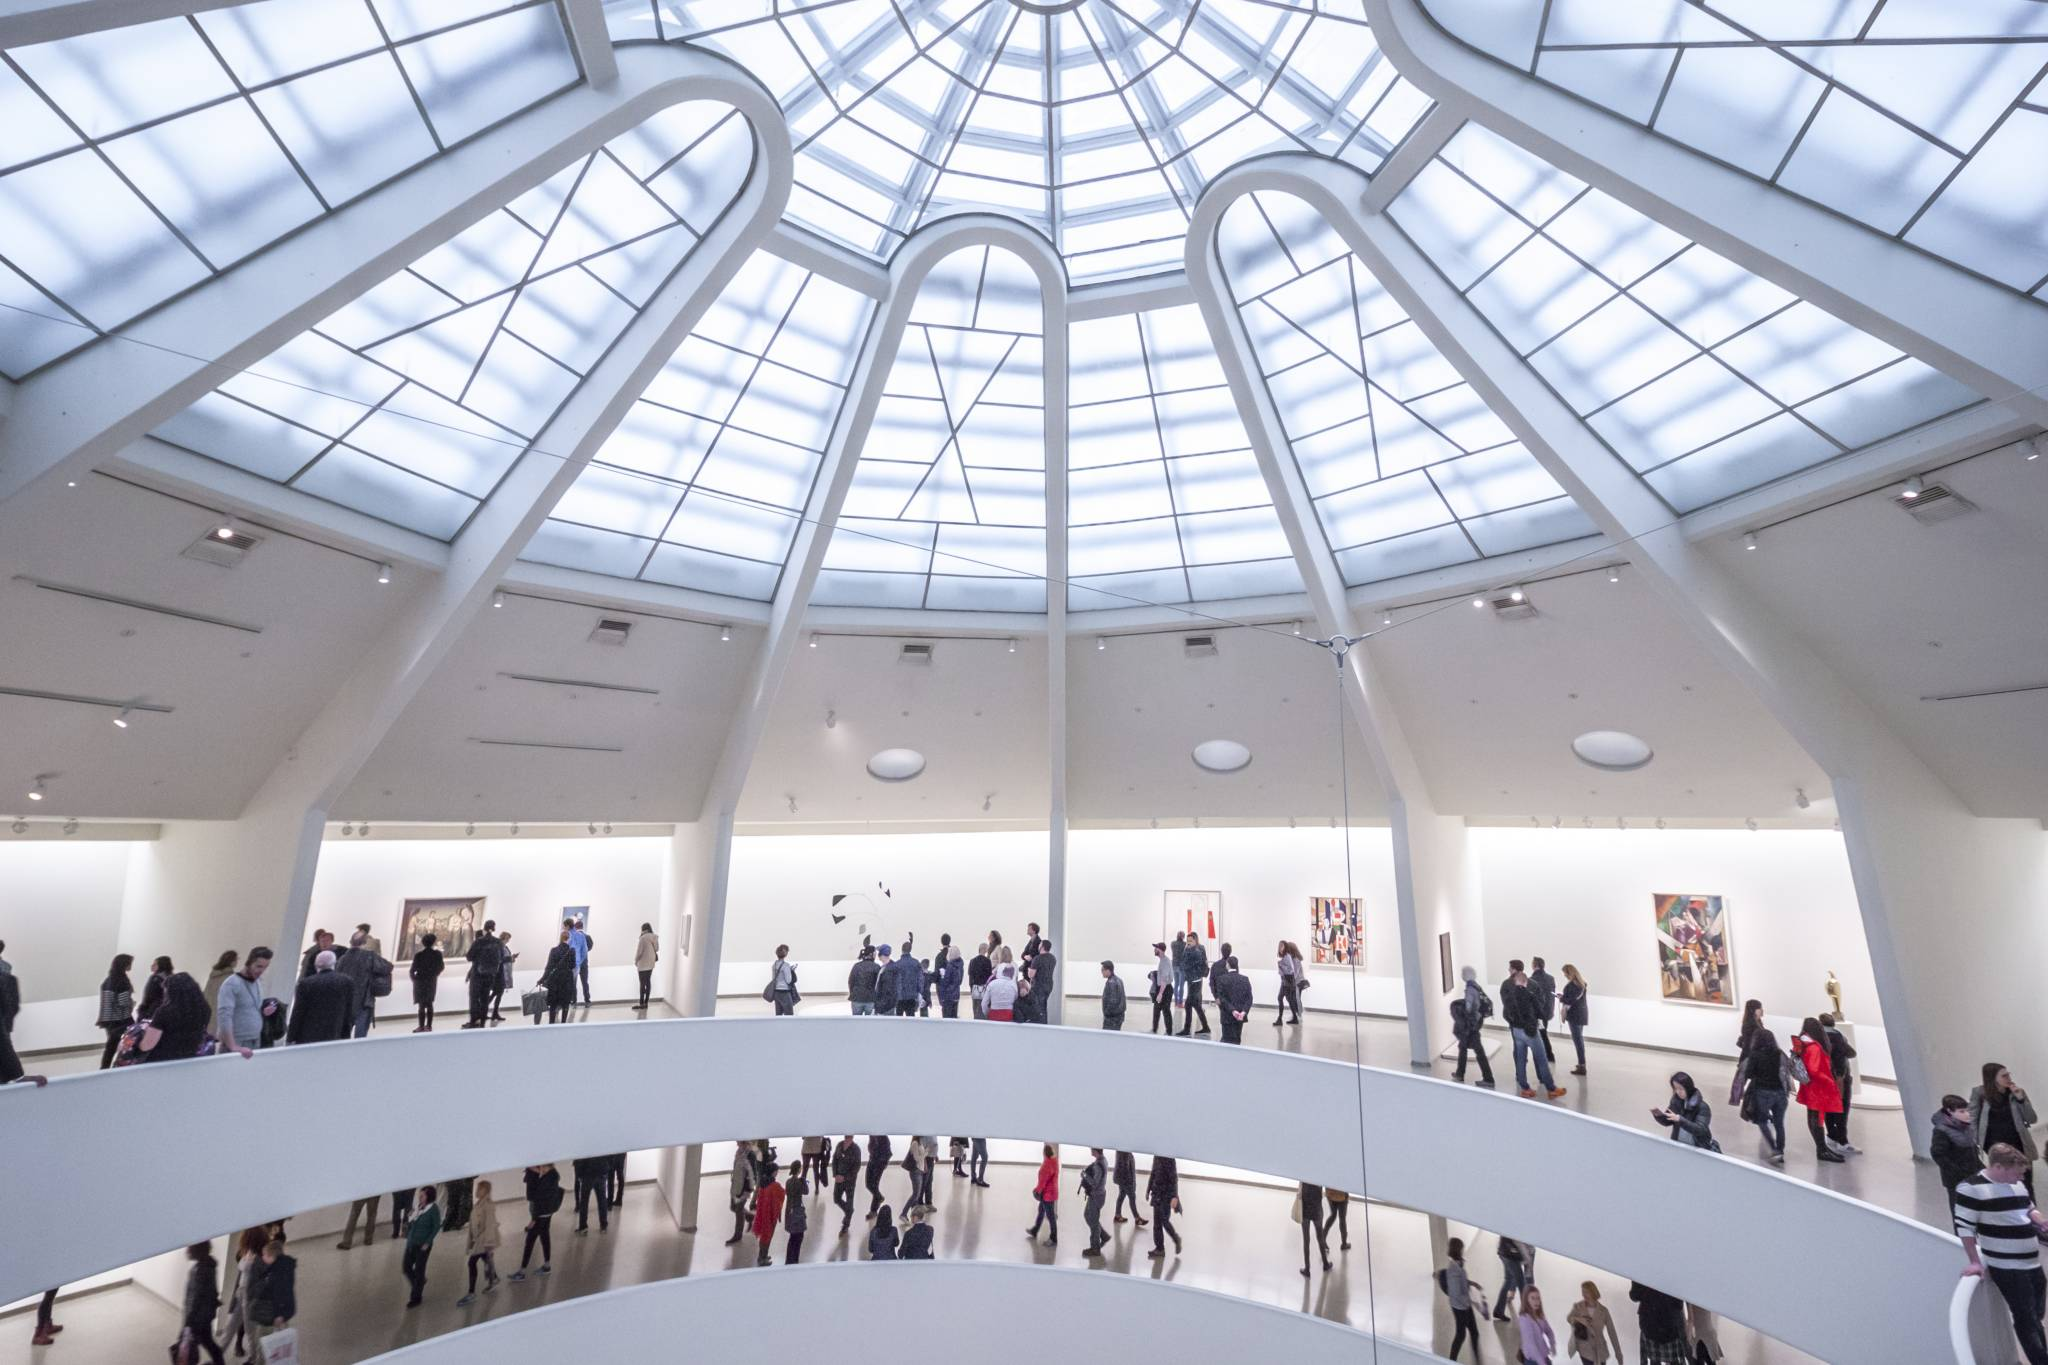 Visit Guggenheim Museum with eTips Visitor Guide